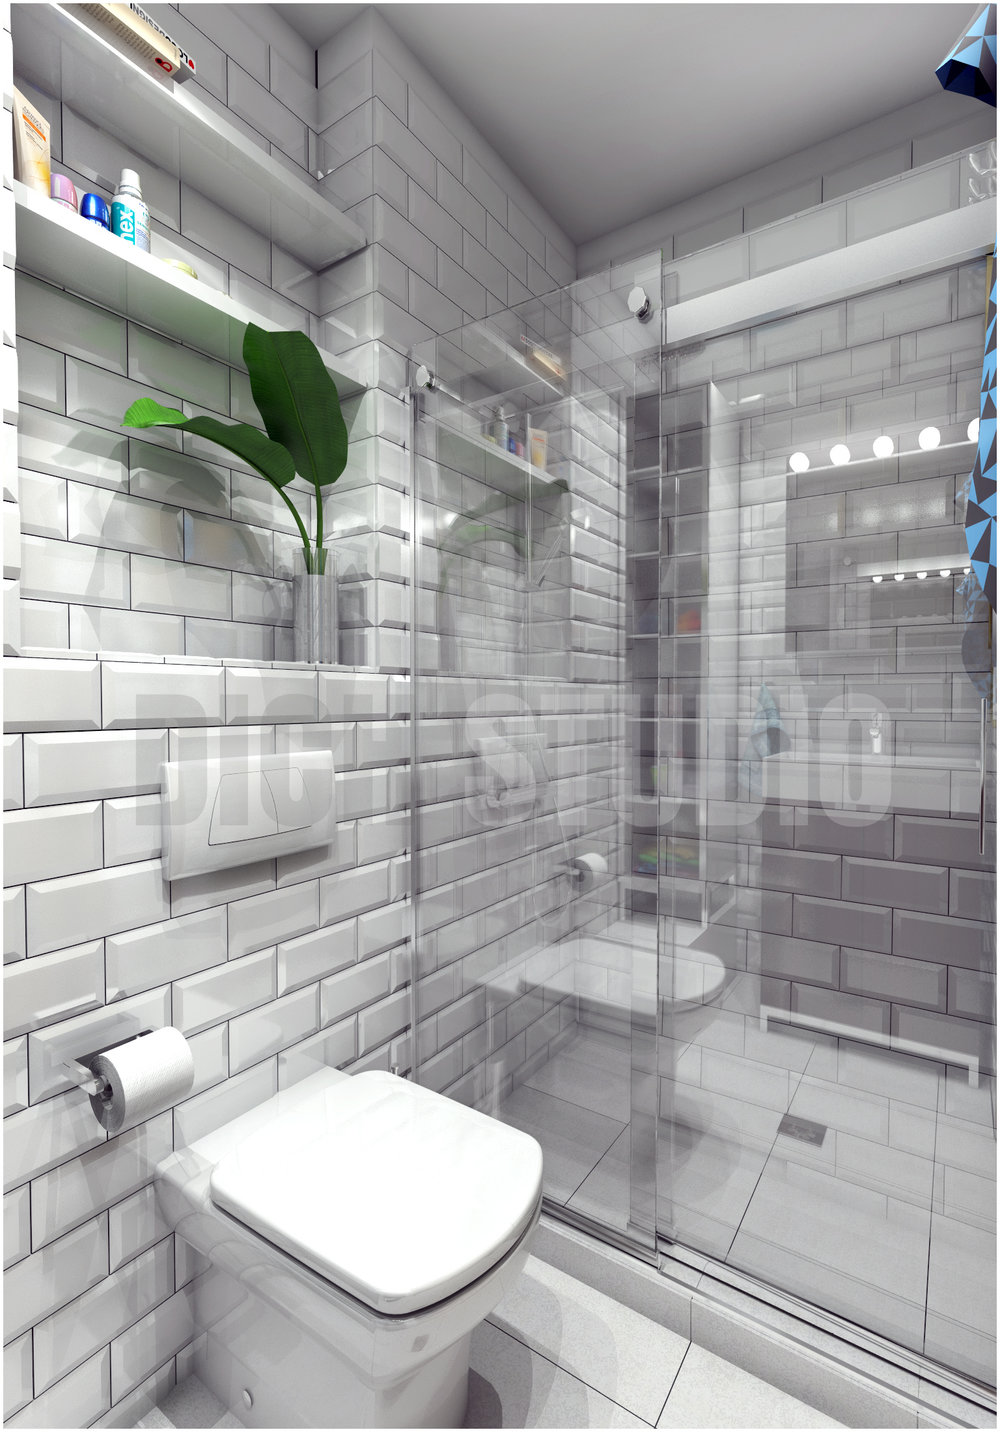 Bathroom white tiles interior design project Mladost Sofia